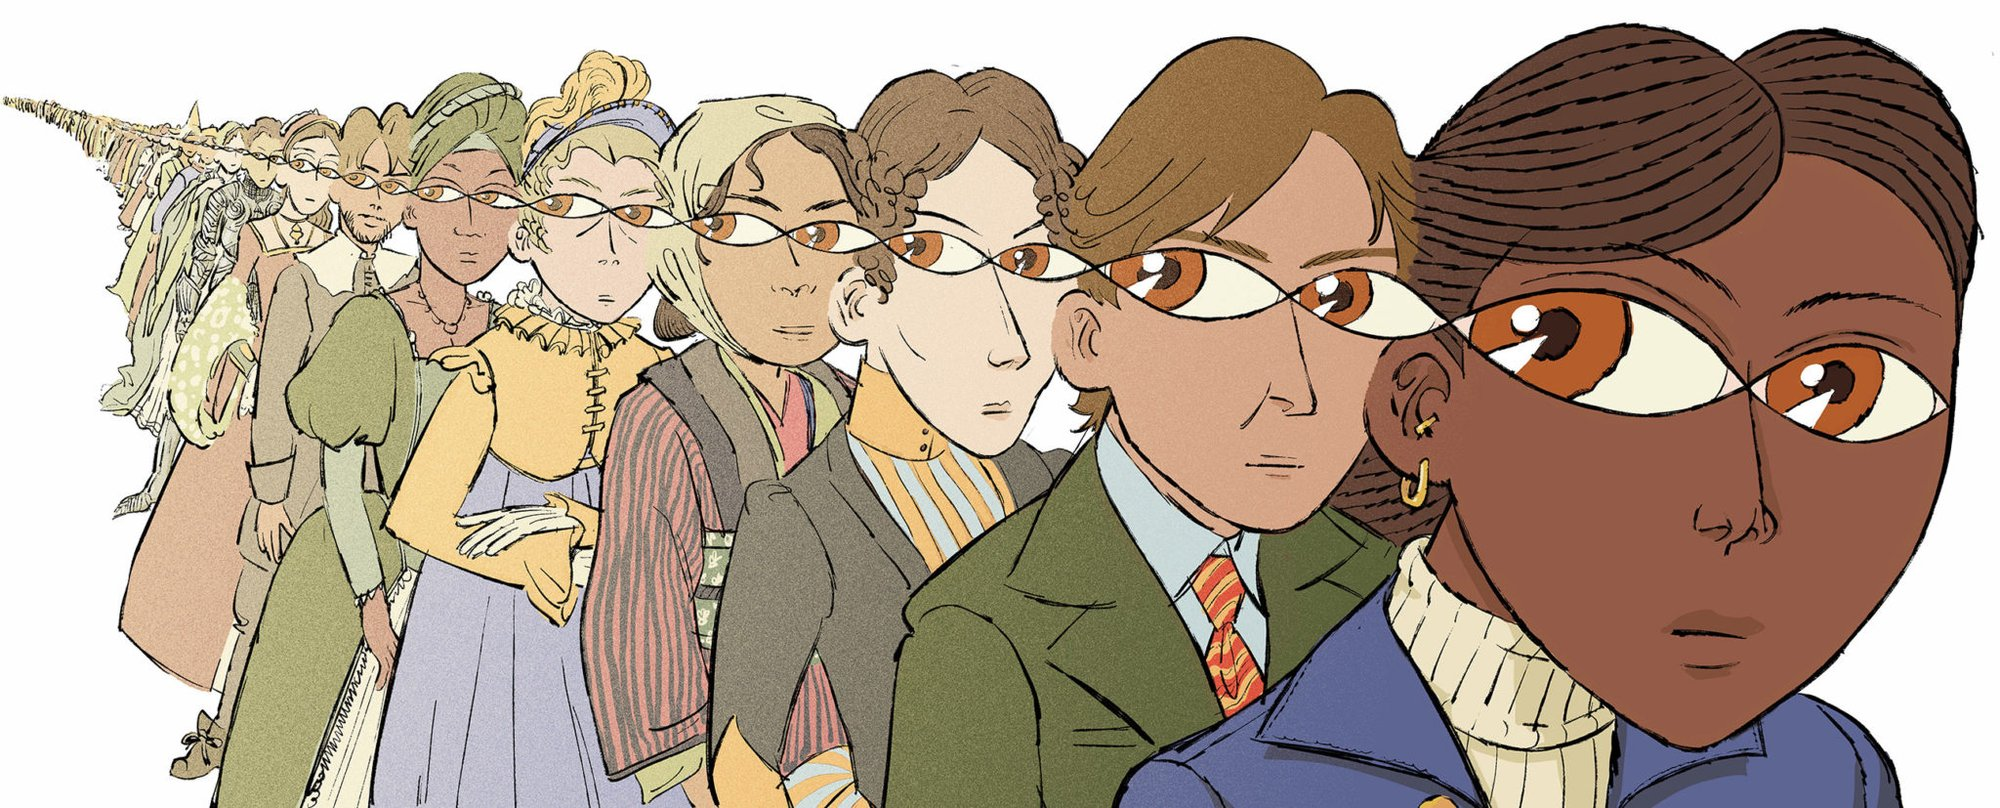 an illustration of an infinite row of humans eying behind them